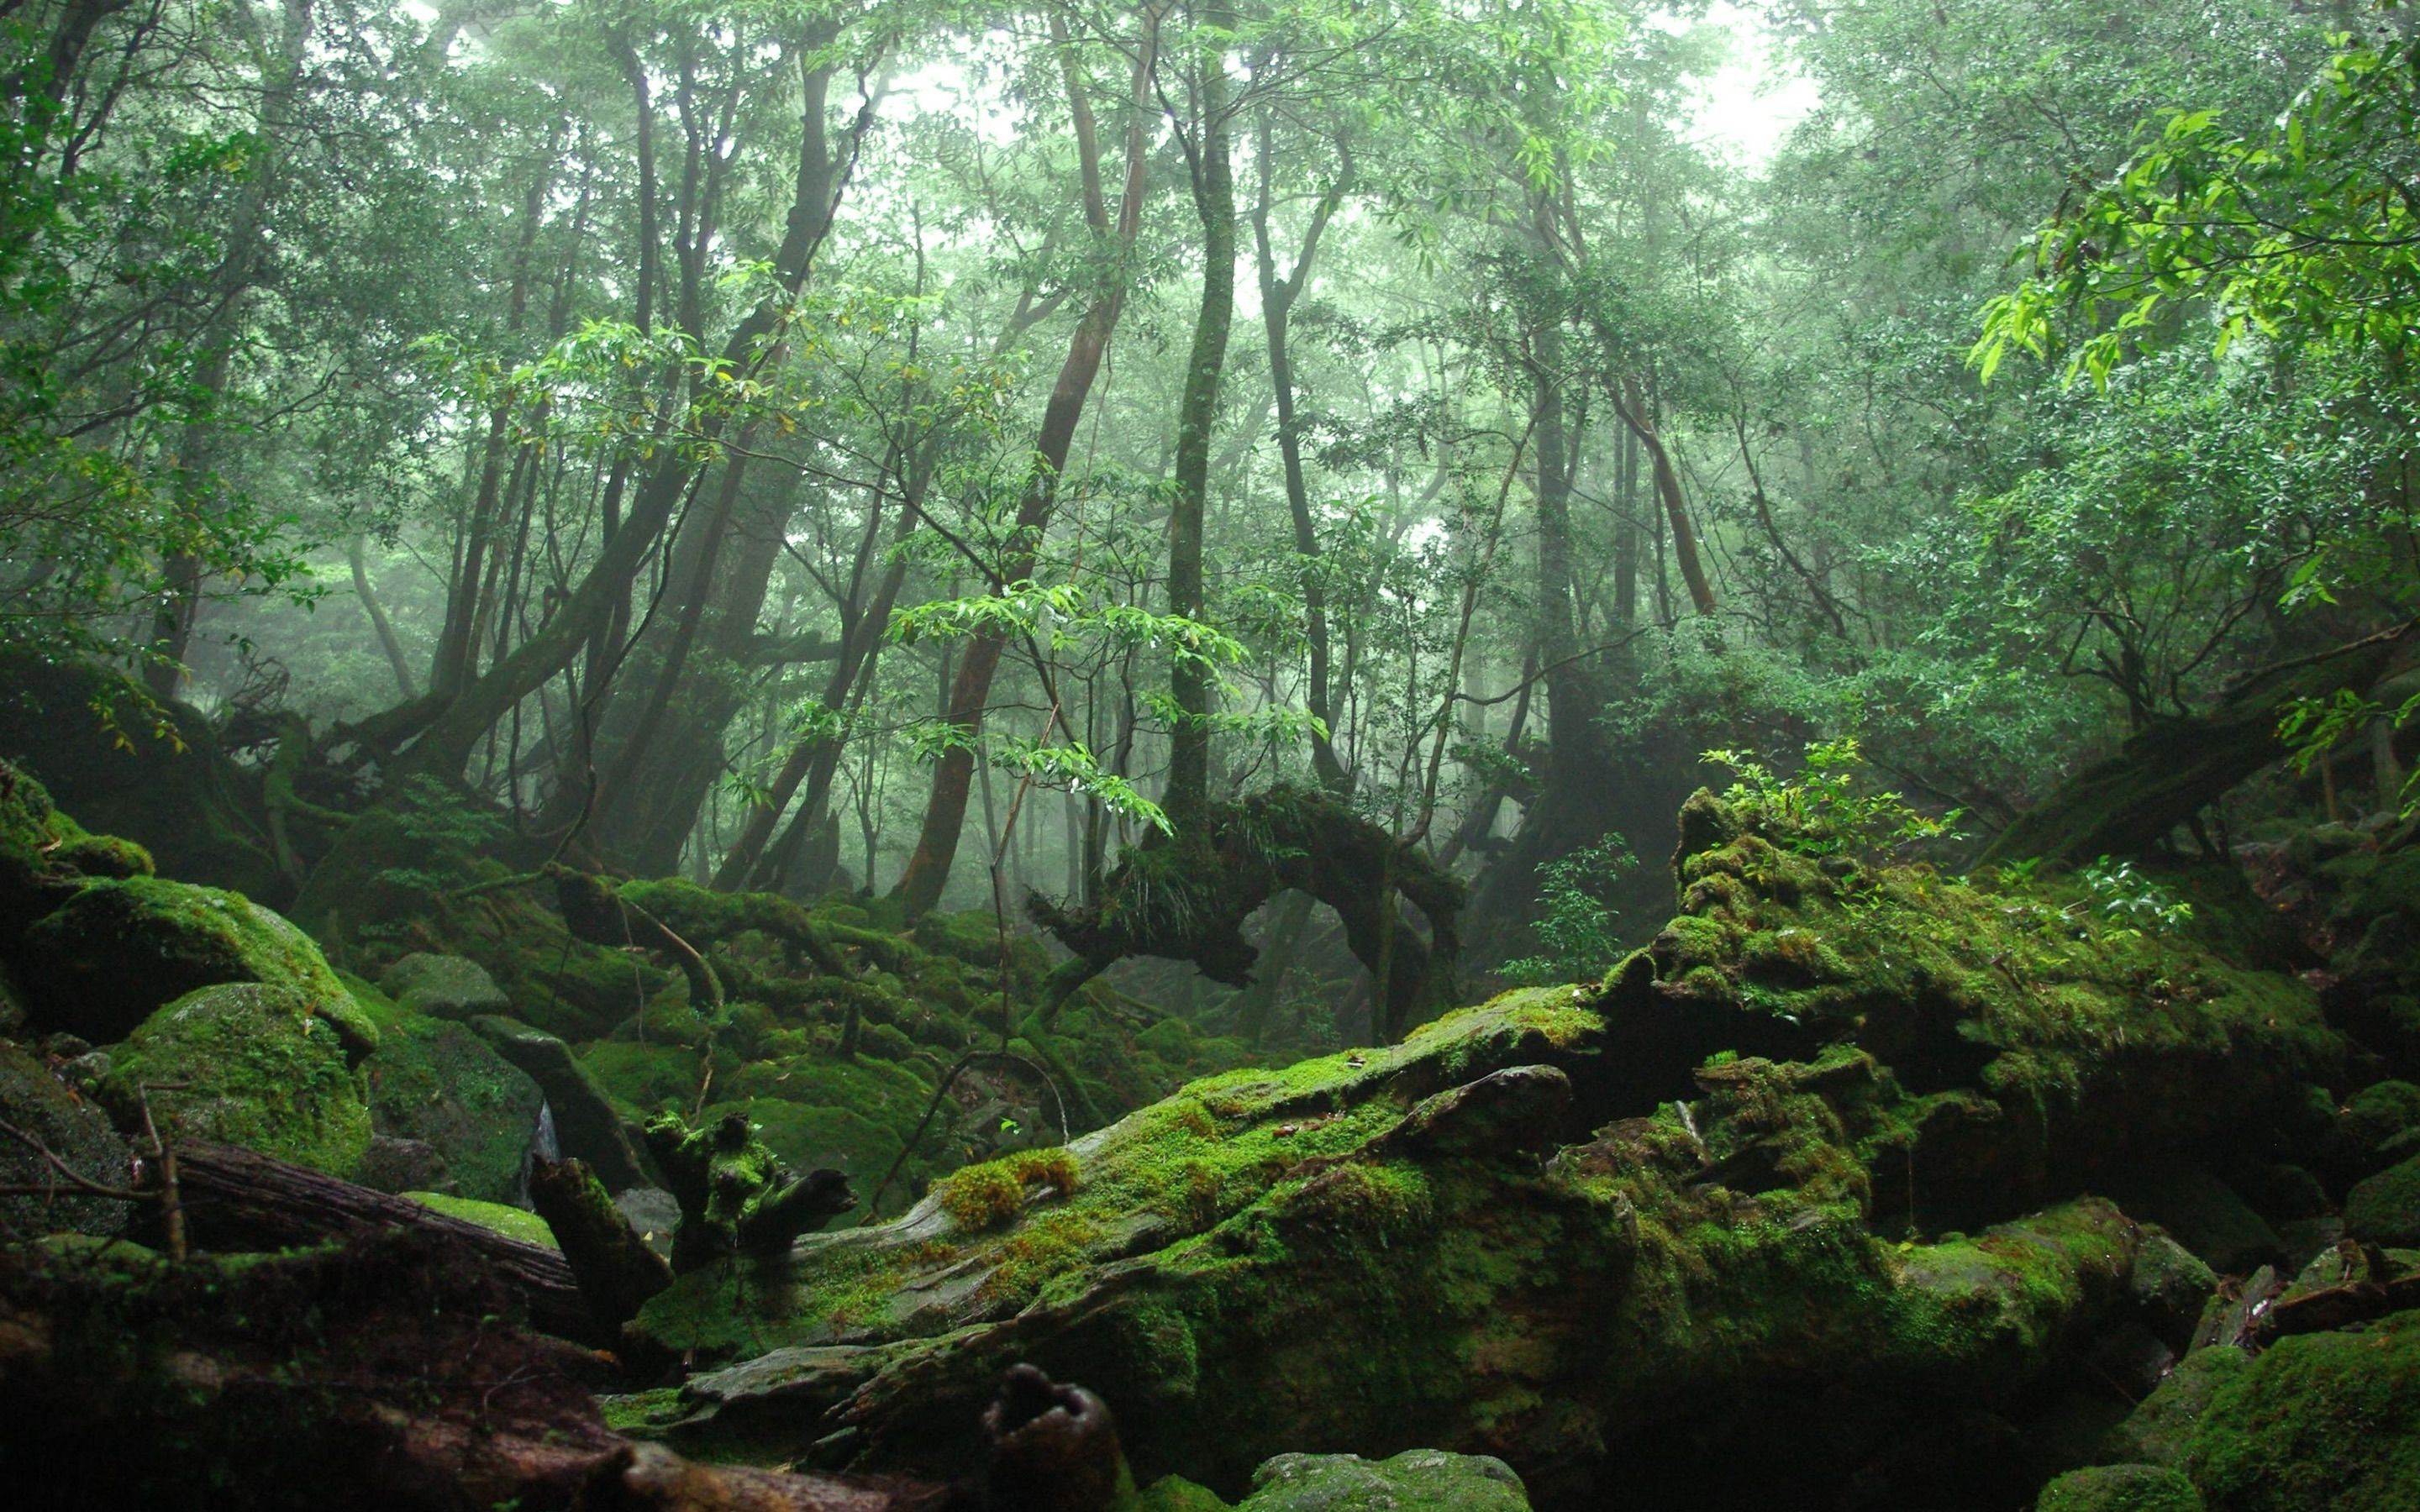 Mossy Rocks In The Forest Wallpaper Wide Picture #fyv21v ...